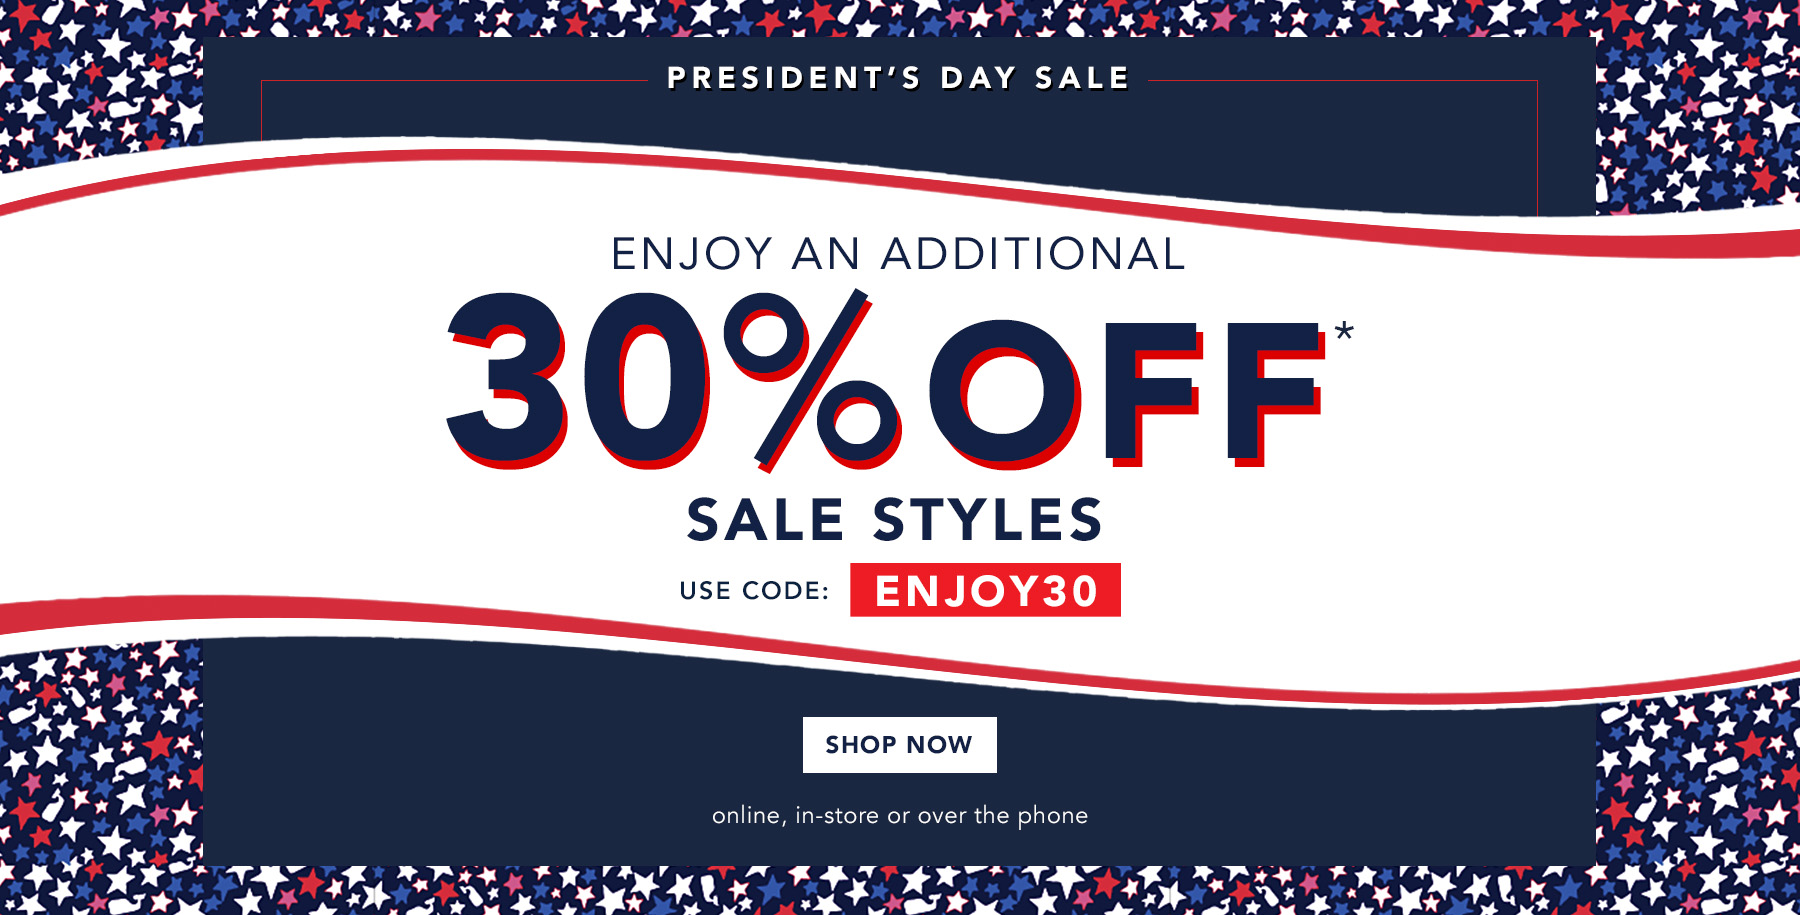 President's Day Sale. Enjoy 30% off* sale styles. Prices as marked. Shop now. Online, in-store or over the phone.